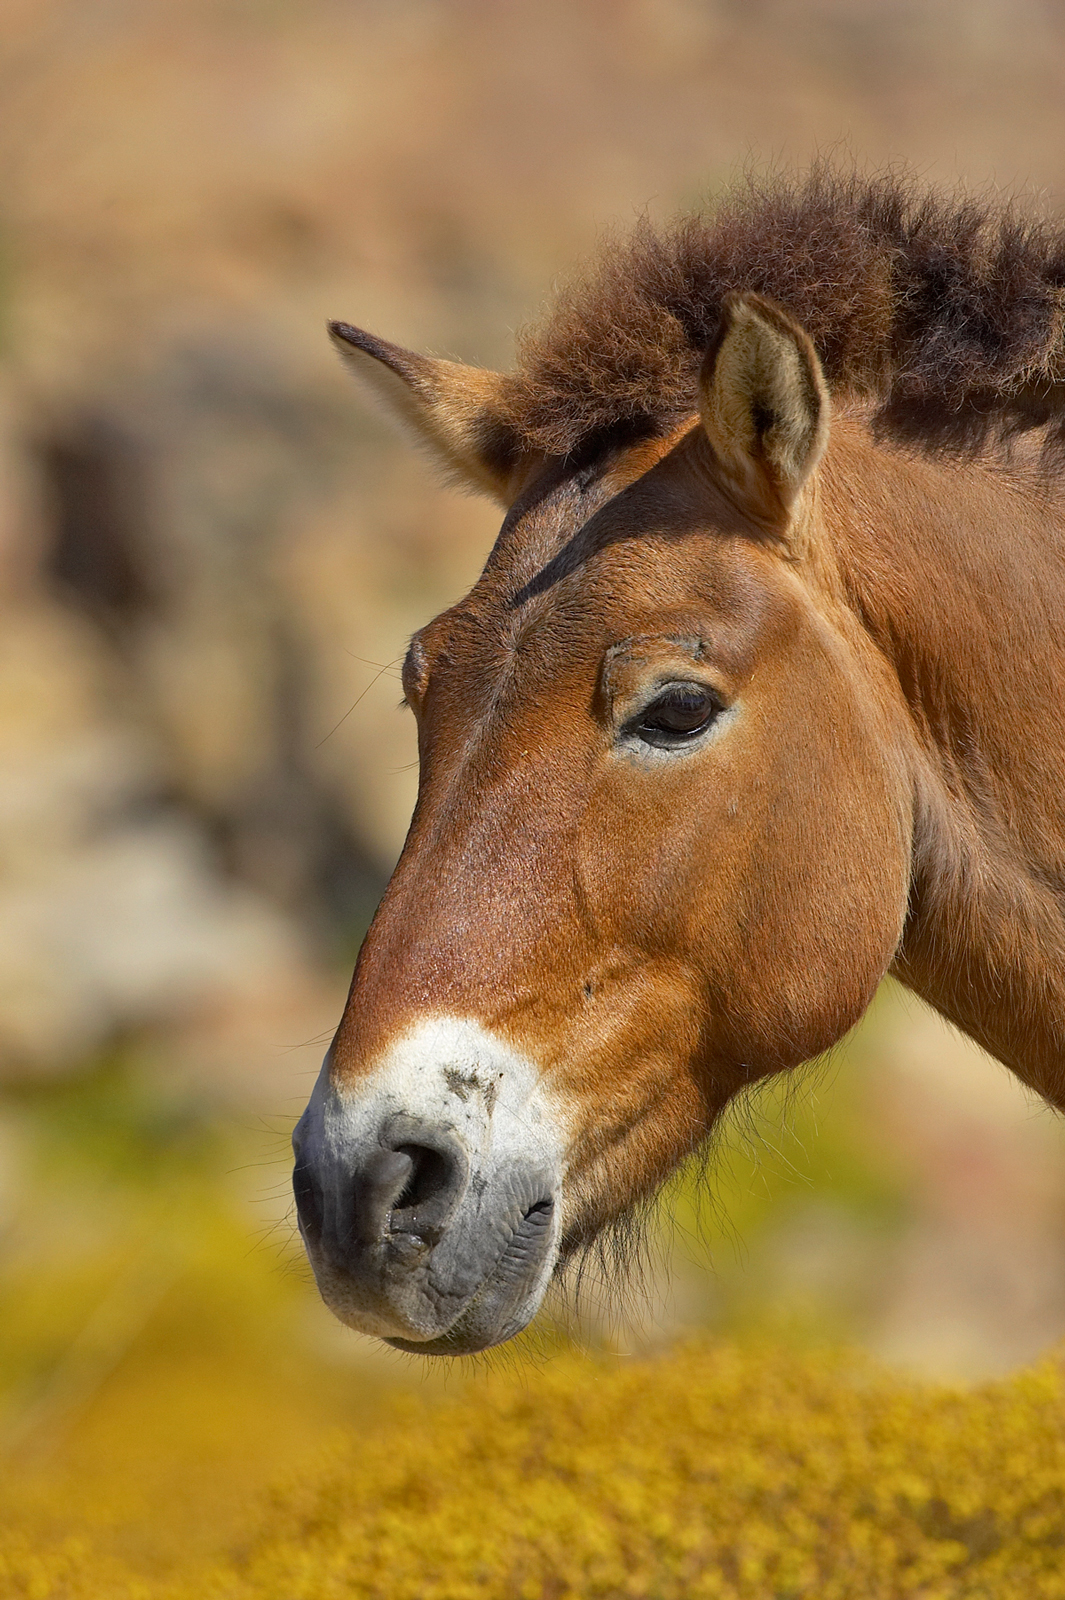 With punk rock style, Przewalski's horses grow thick, warm coats for the winter, complete with long beards and neck hair. These Mongolian wild horses rock the mohawk without the teenage angst.